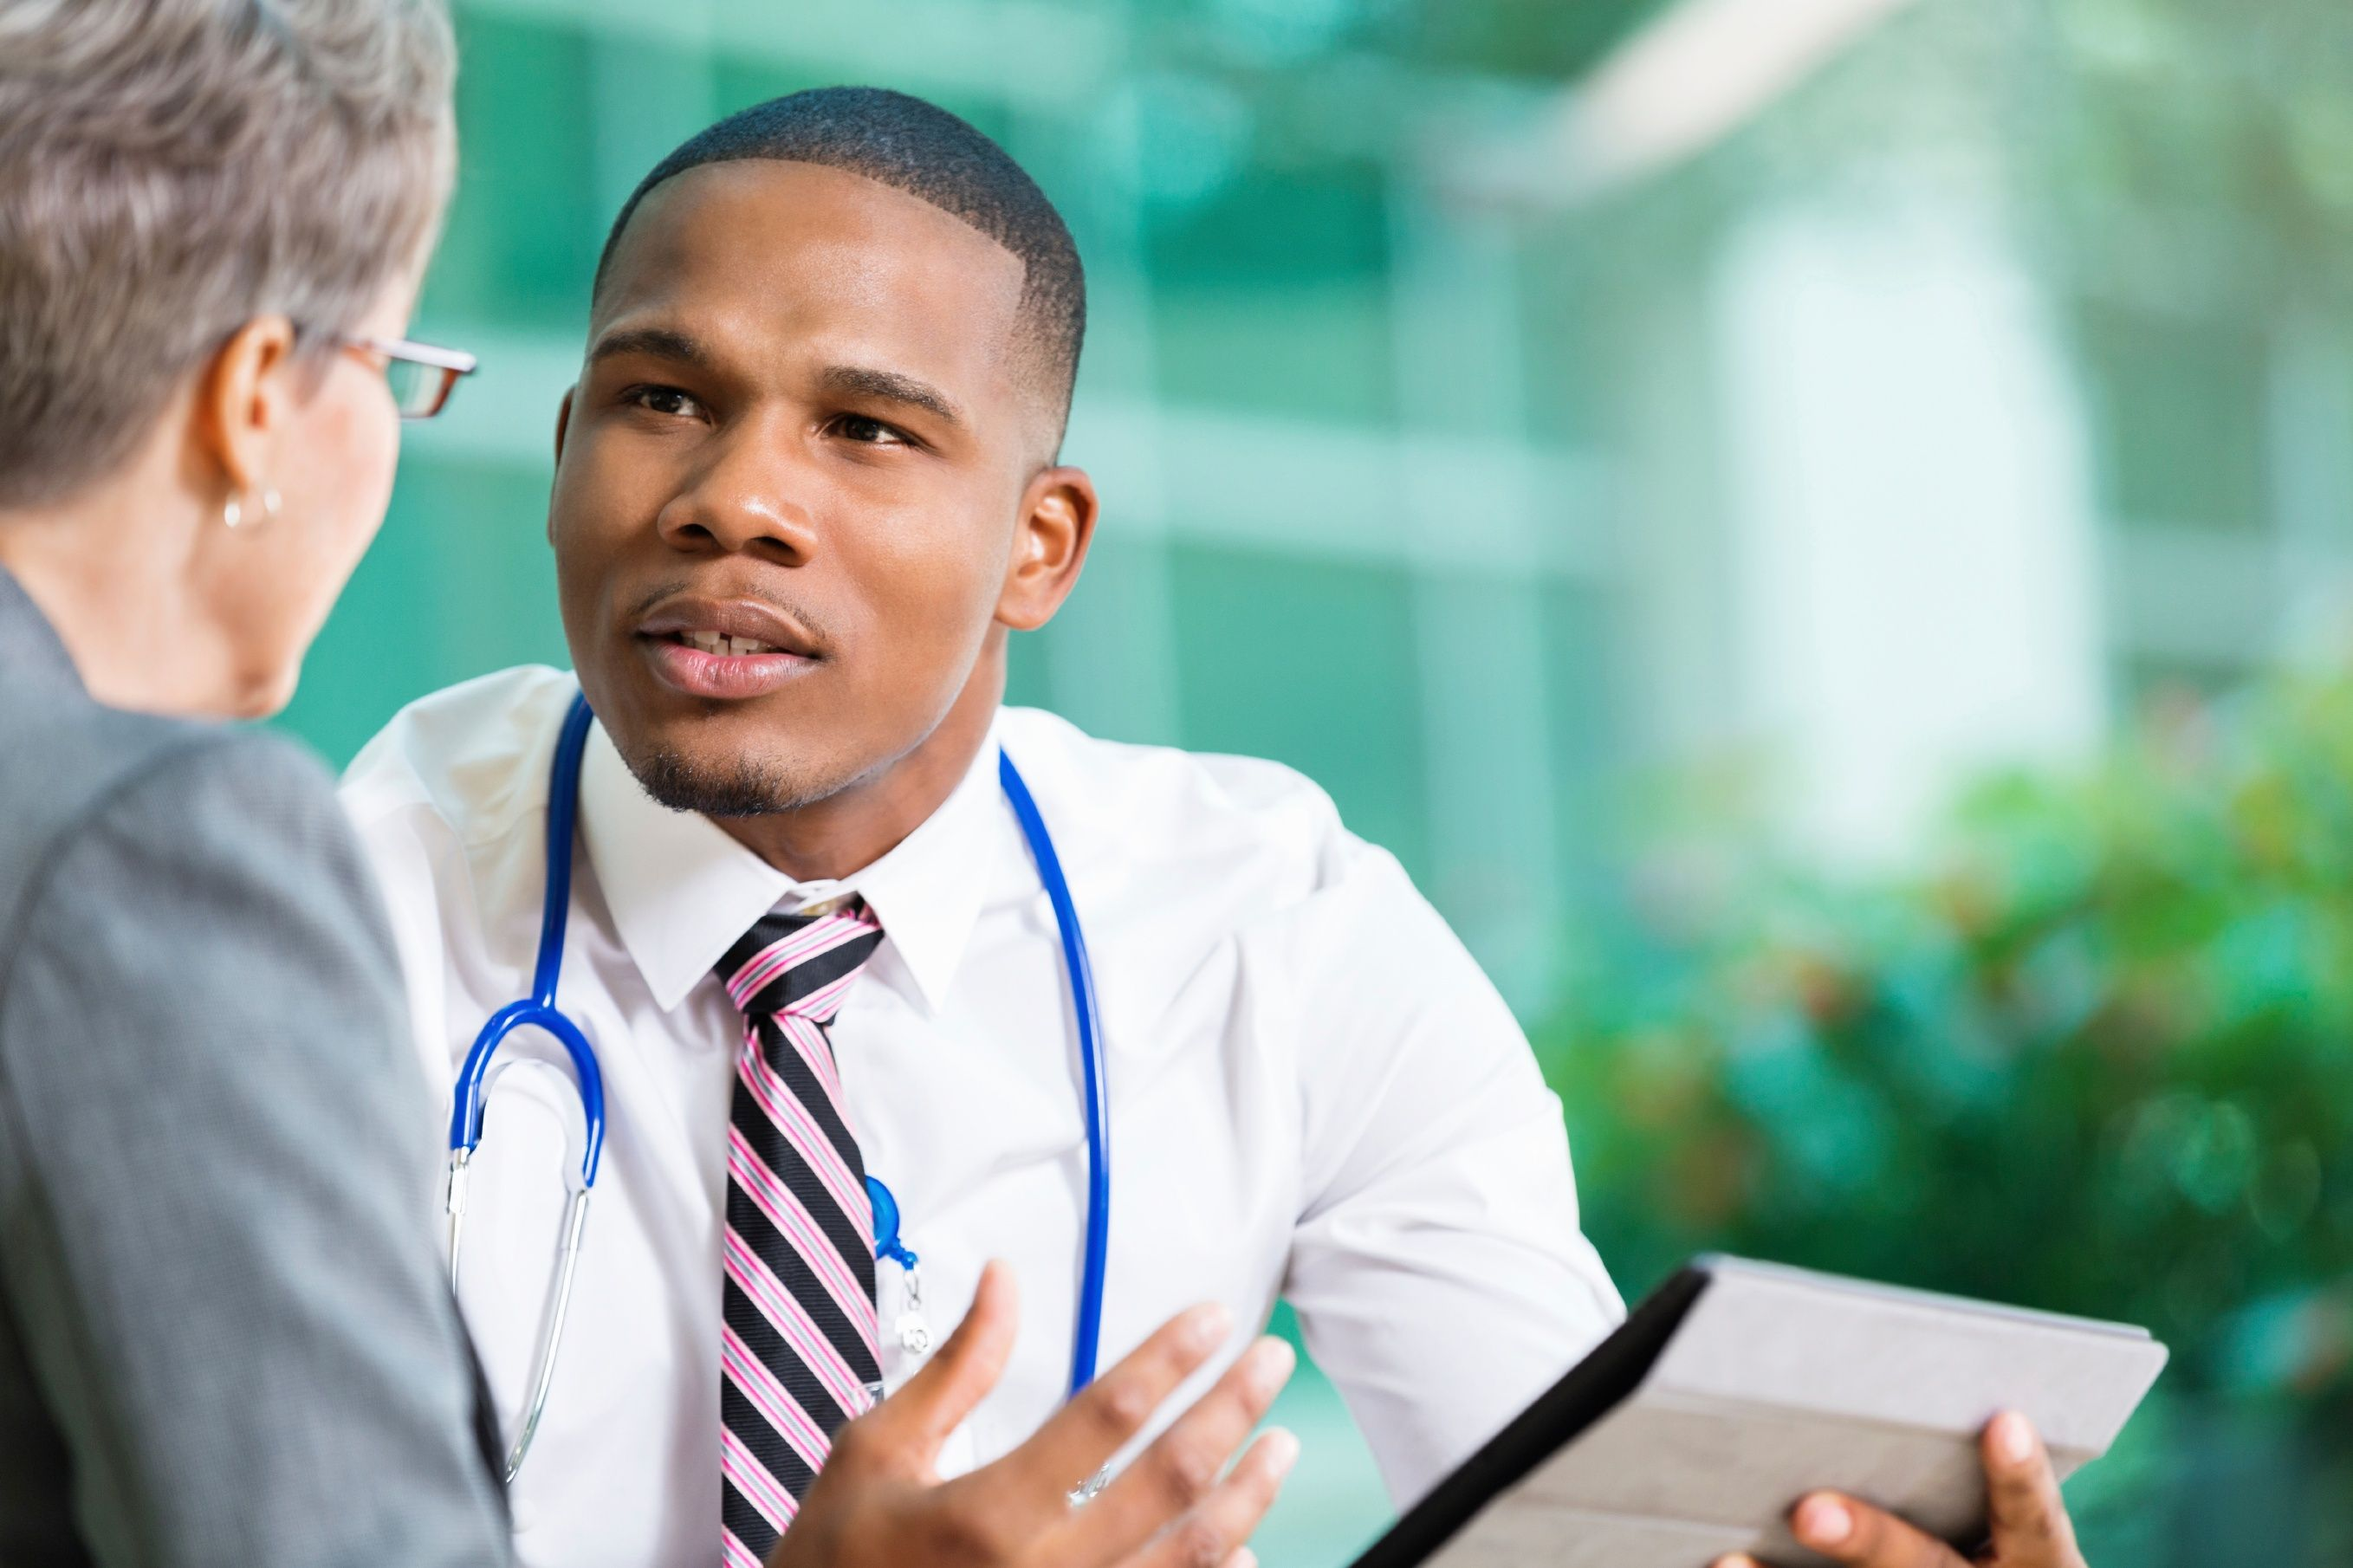 Questions to ask your personal injury doctor